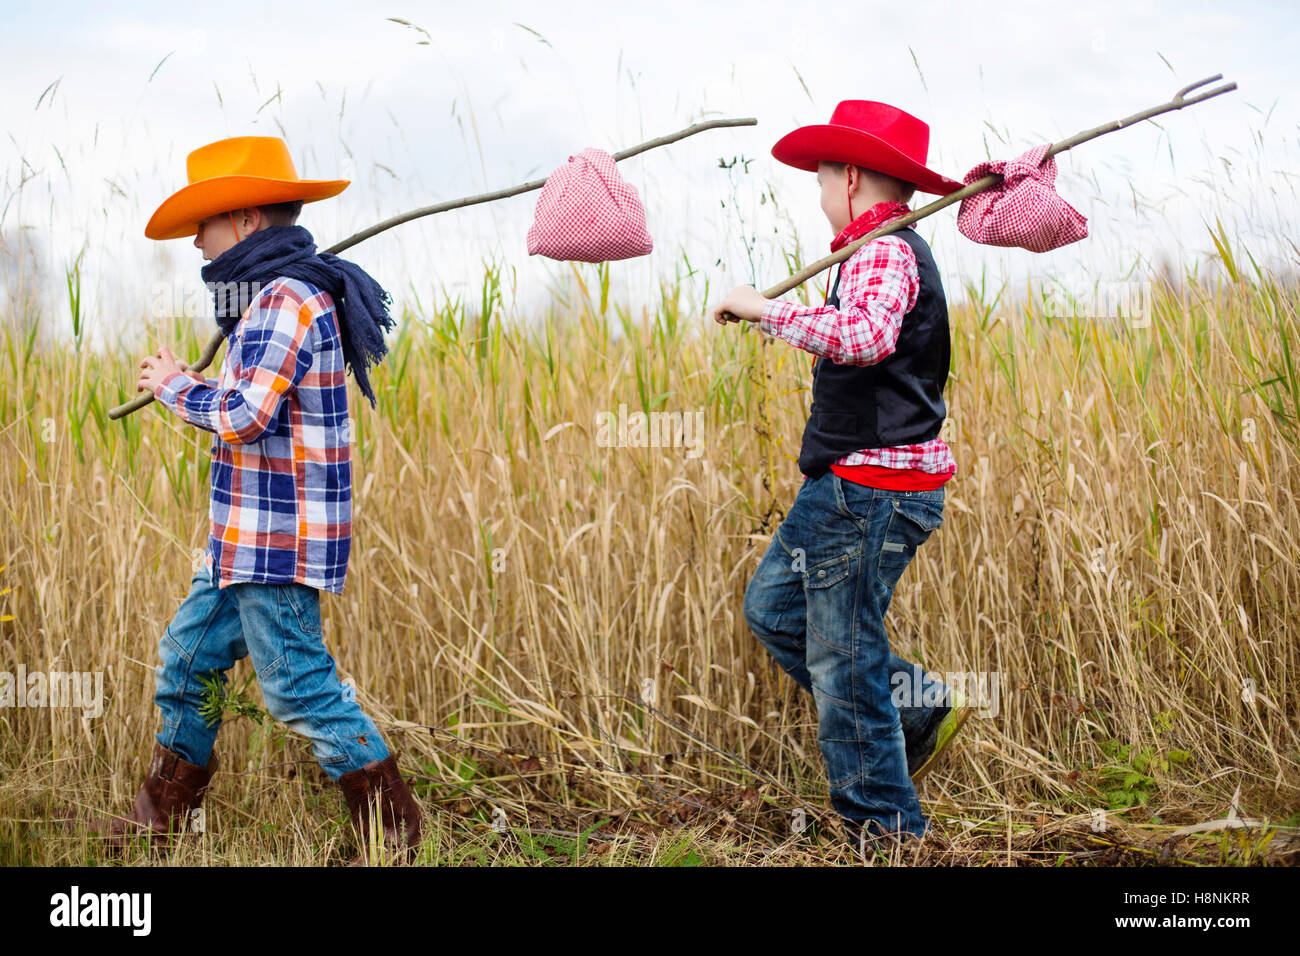 Boys (8-9) dressed up as cowboys walking in field - Stock Image